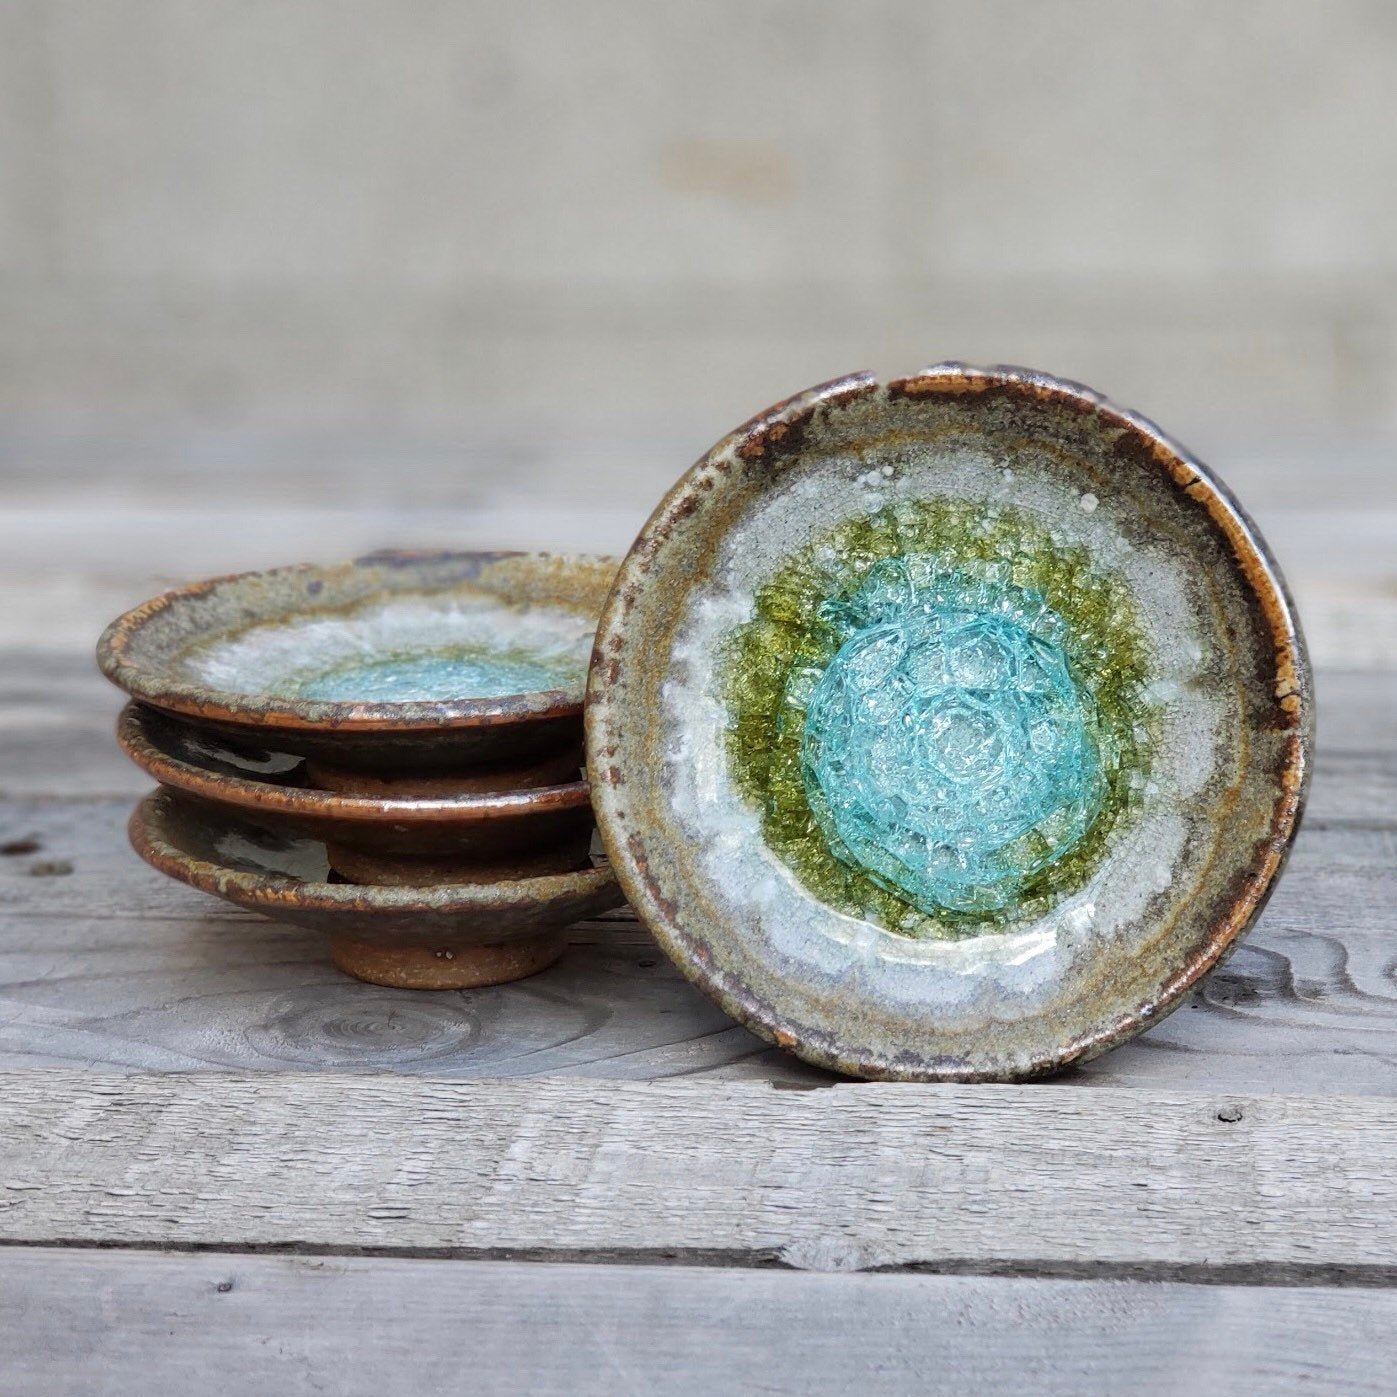 Geode, Glass, and Pottery Wedding Ring Dish by Dock 6 Pottery and Tile